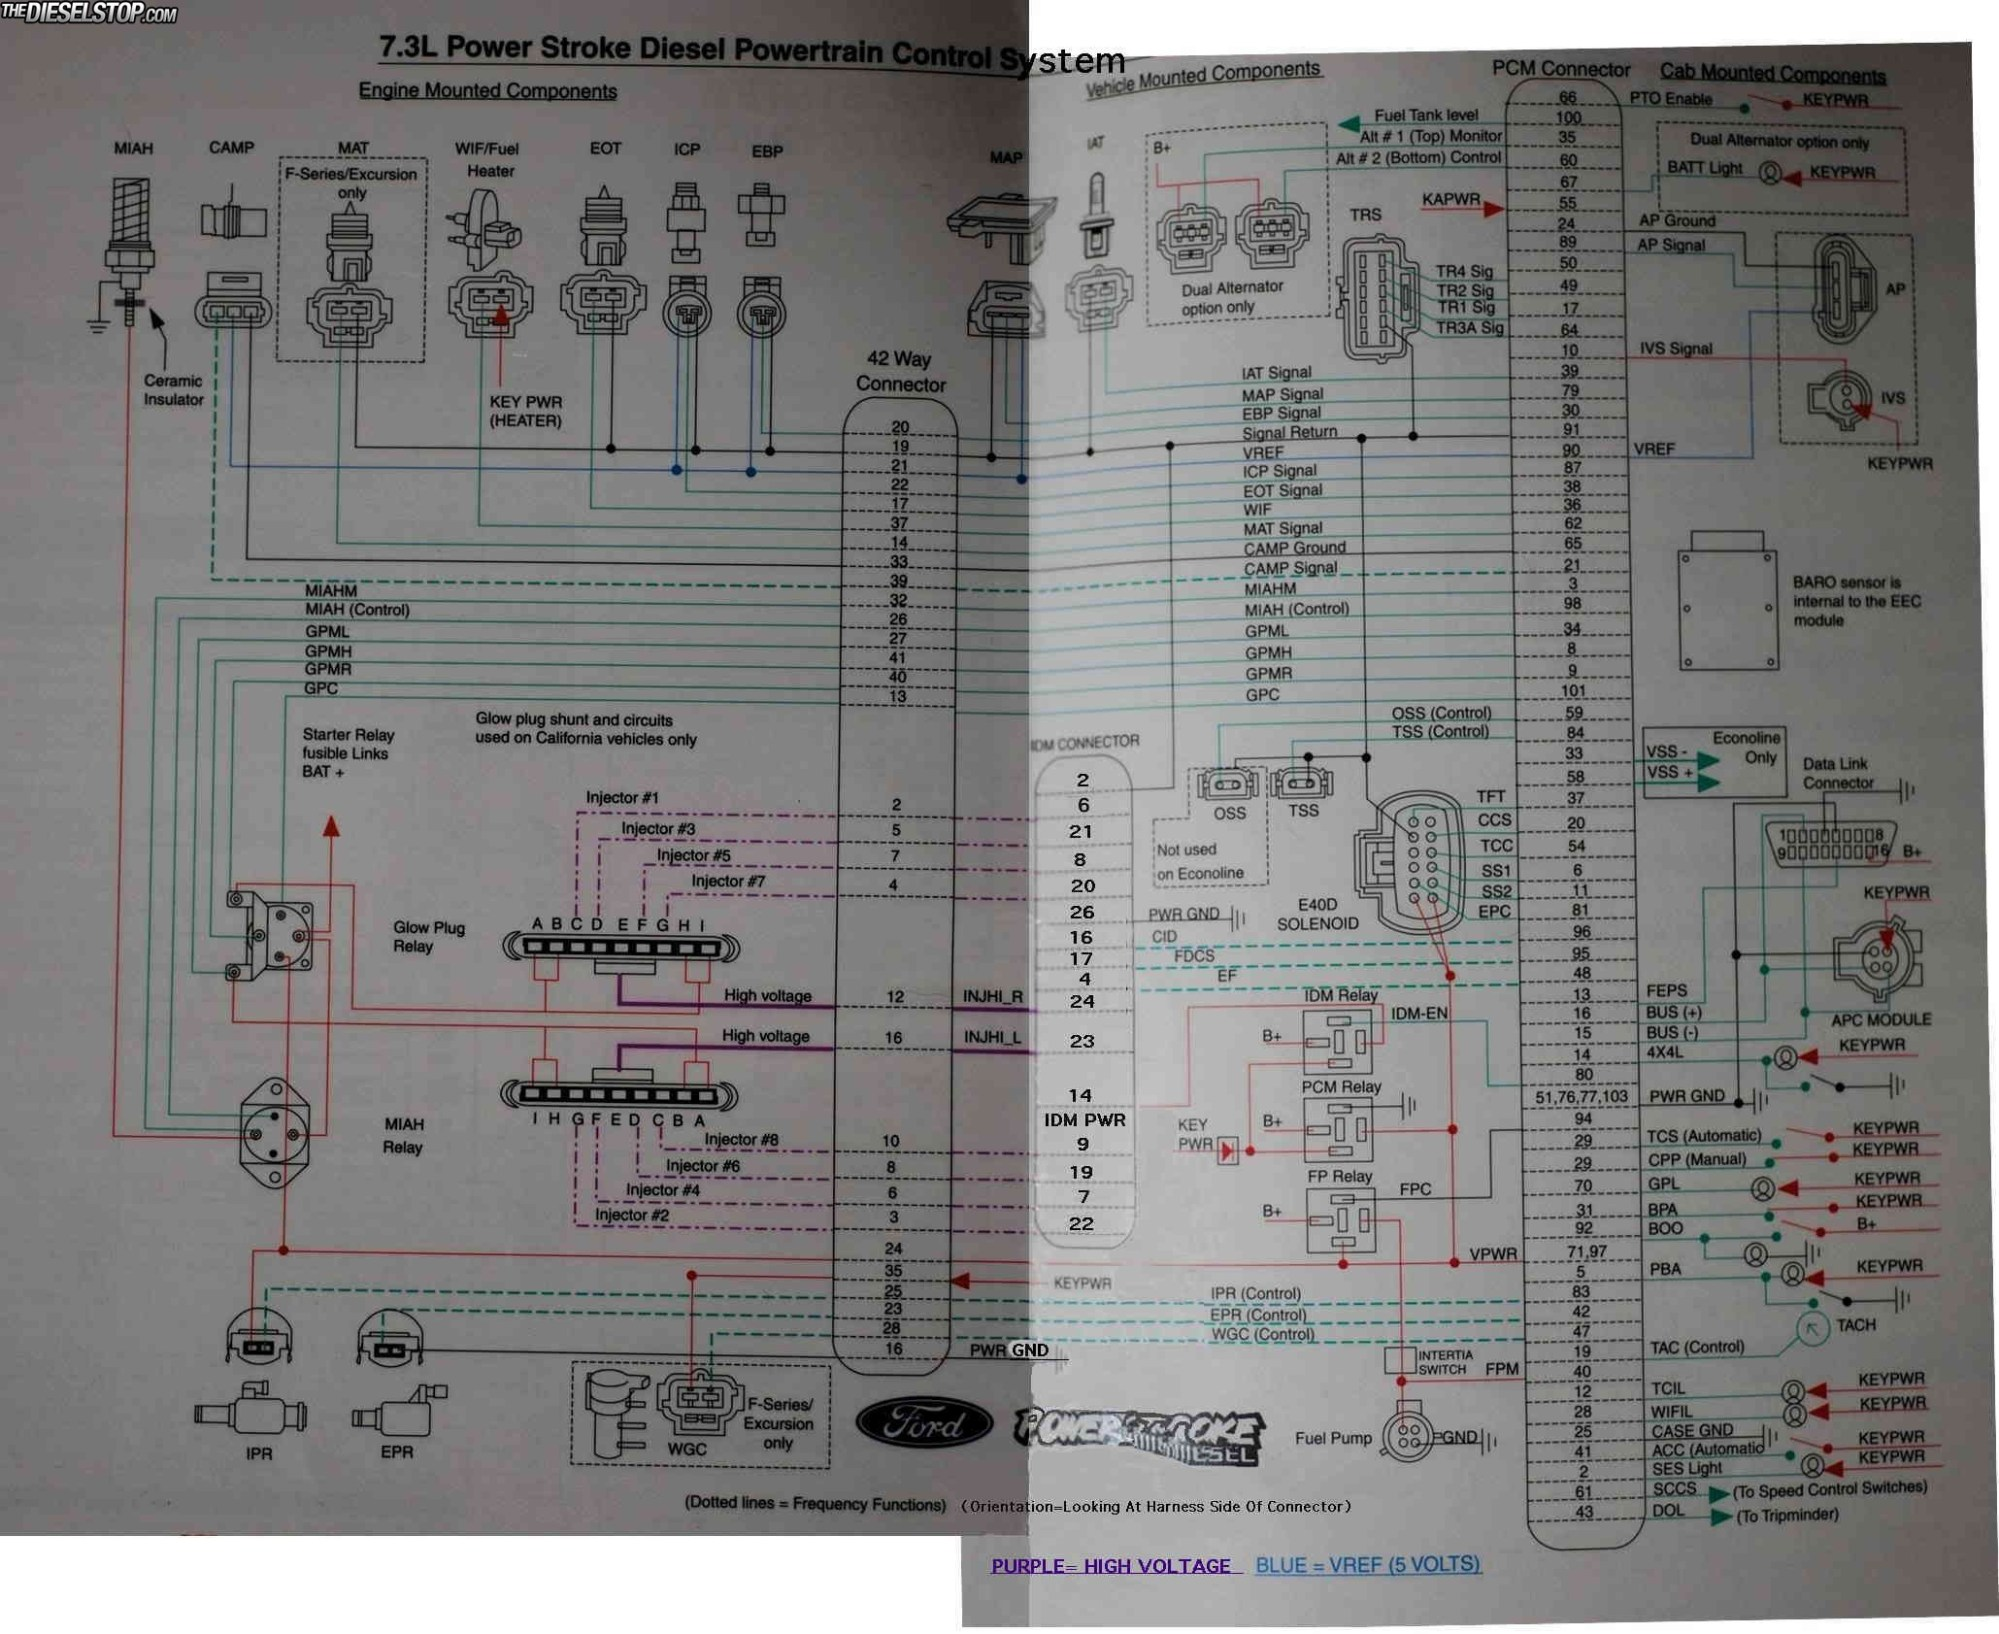 hight resolution of wiring diagram glow plug 7 3 2001 ford f350 another wiring diagrams u2022 rh benpaterson co